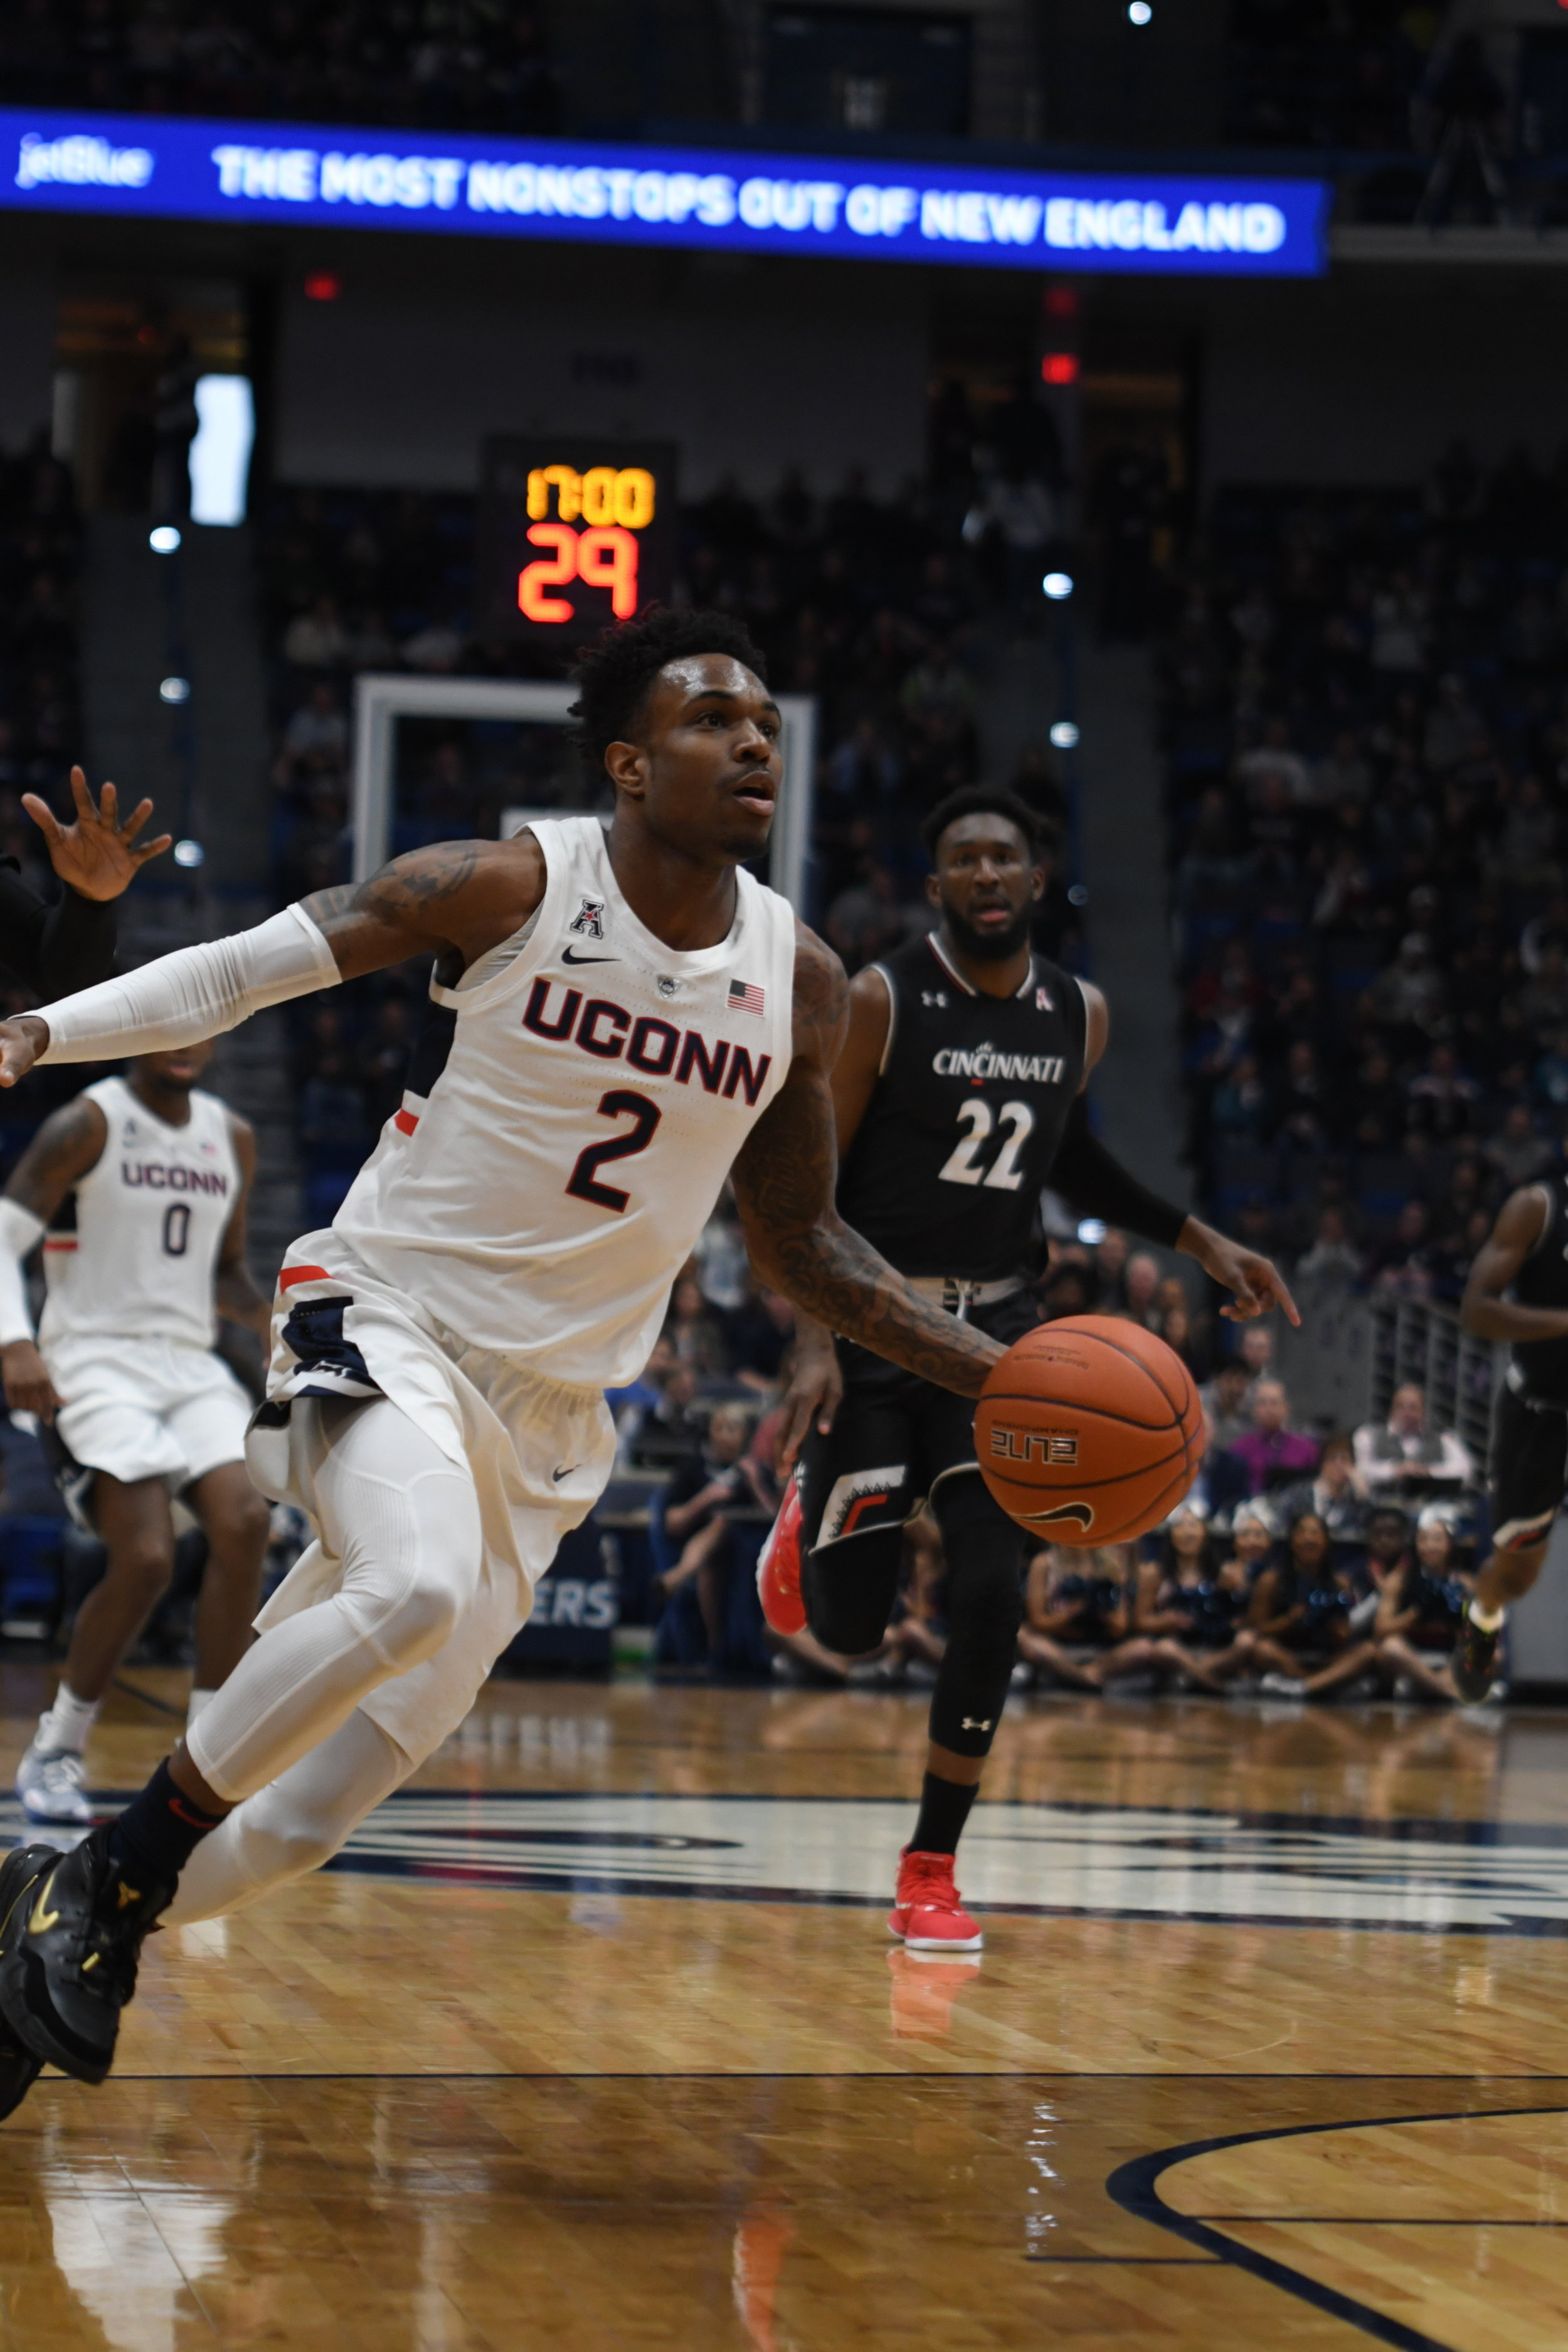 The UConn Huskies mens basketball team battles the Cincinnati Bearcats down to the final seconds of a game at the XL Center in Hartford, Connecticut. The game resulted in a 64-60 loss for the Huskies. (Photo by Judah Shingleton/The Daily Campus)